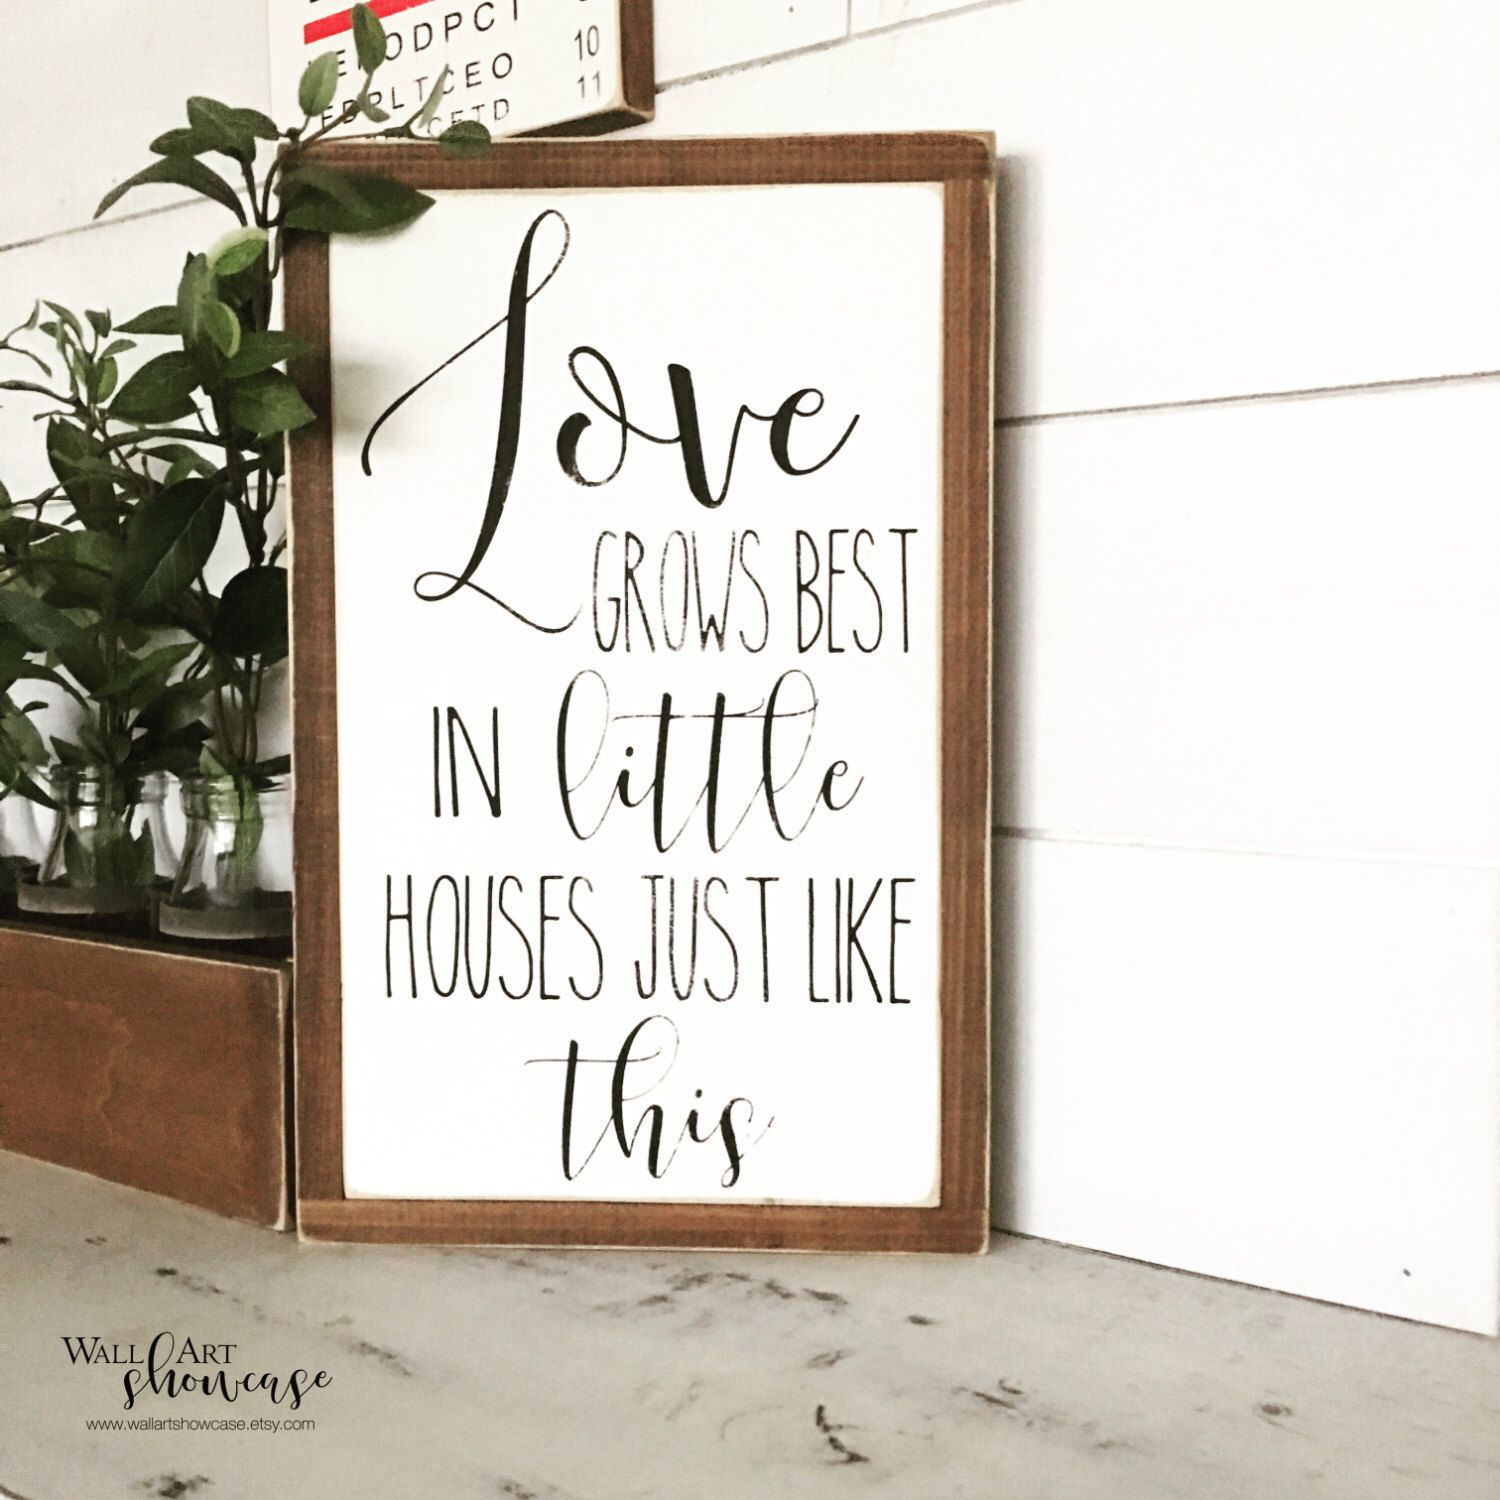 Love grows best in little houses painted wood sign - Wood sign - Distressed Rustic Antiqued sign Decor - Wall Decor - Wall Art by WallArtShowcase on Etsy https://www.etsy.com/listing/506572999/love-grows-best-in-little-houses-painted